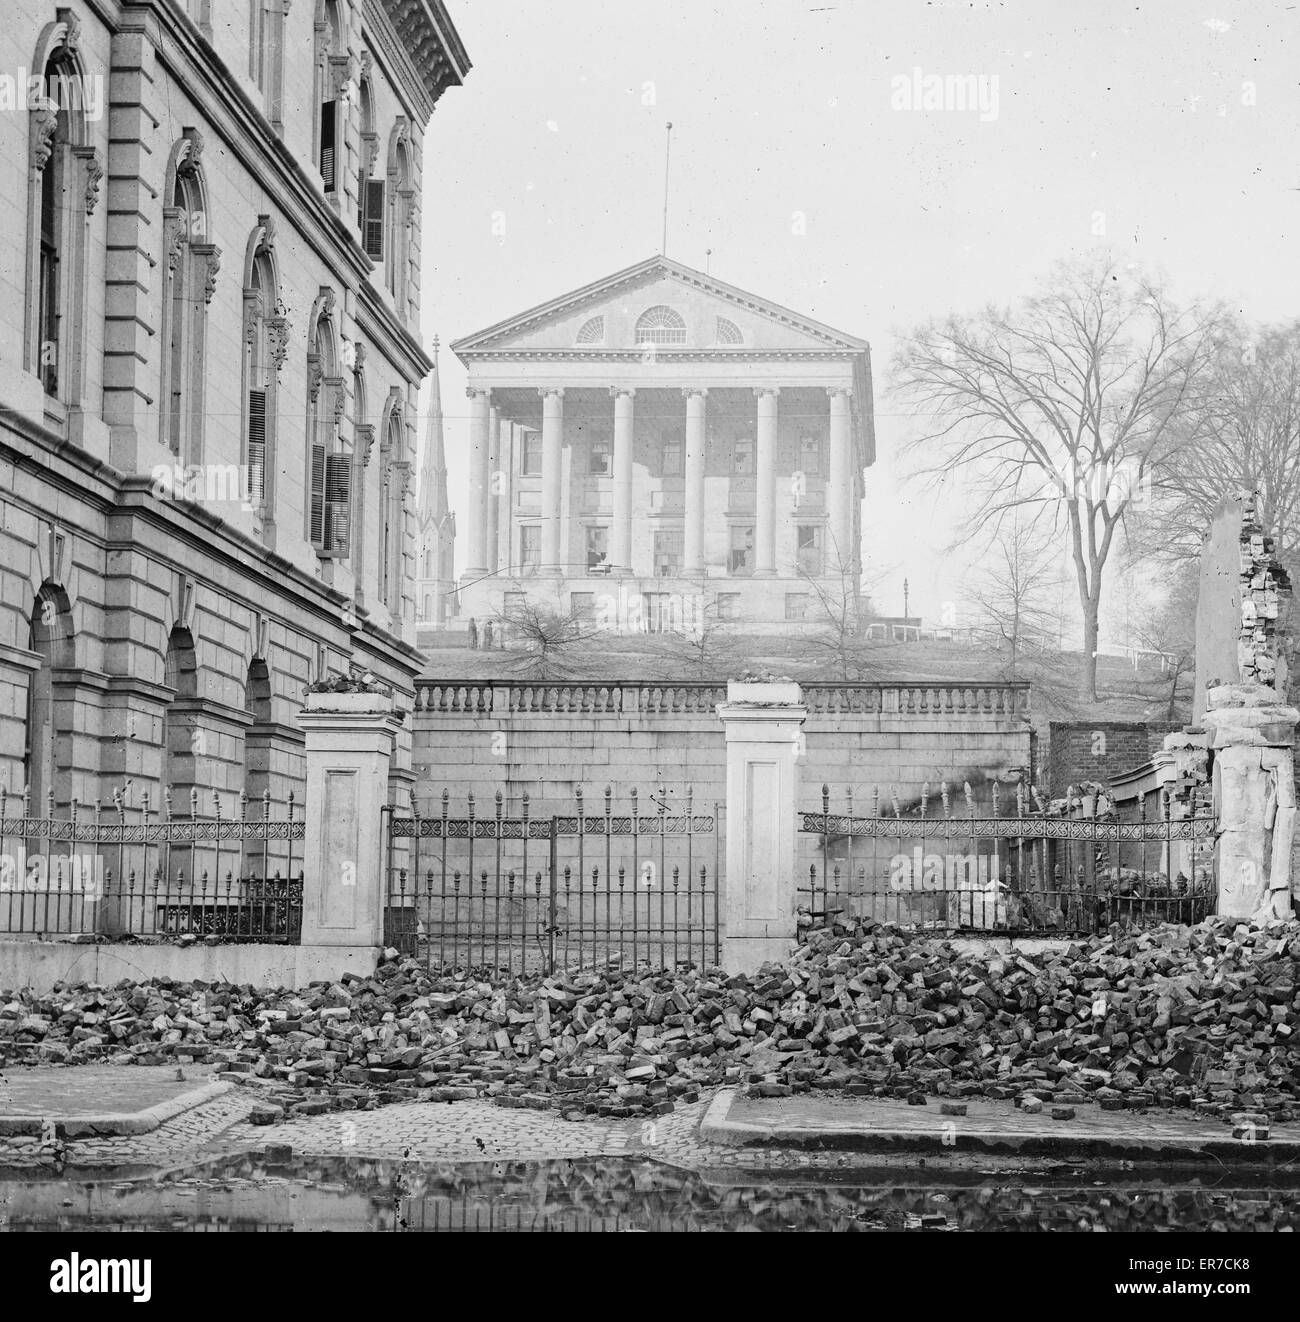 Richmond, Va. Custom House (left) and Capitol (center); rubble in street. Photograph from the main eastern theater - Stock Image